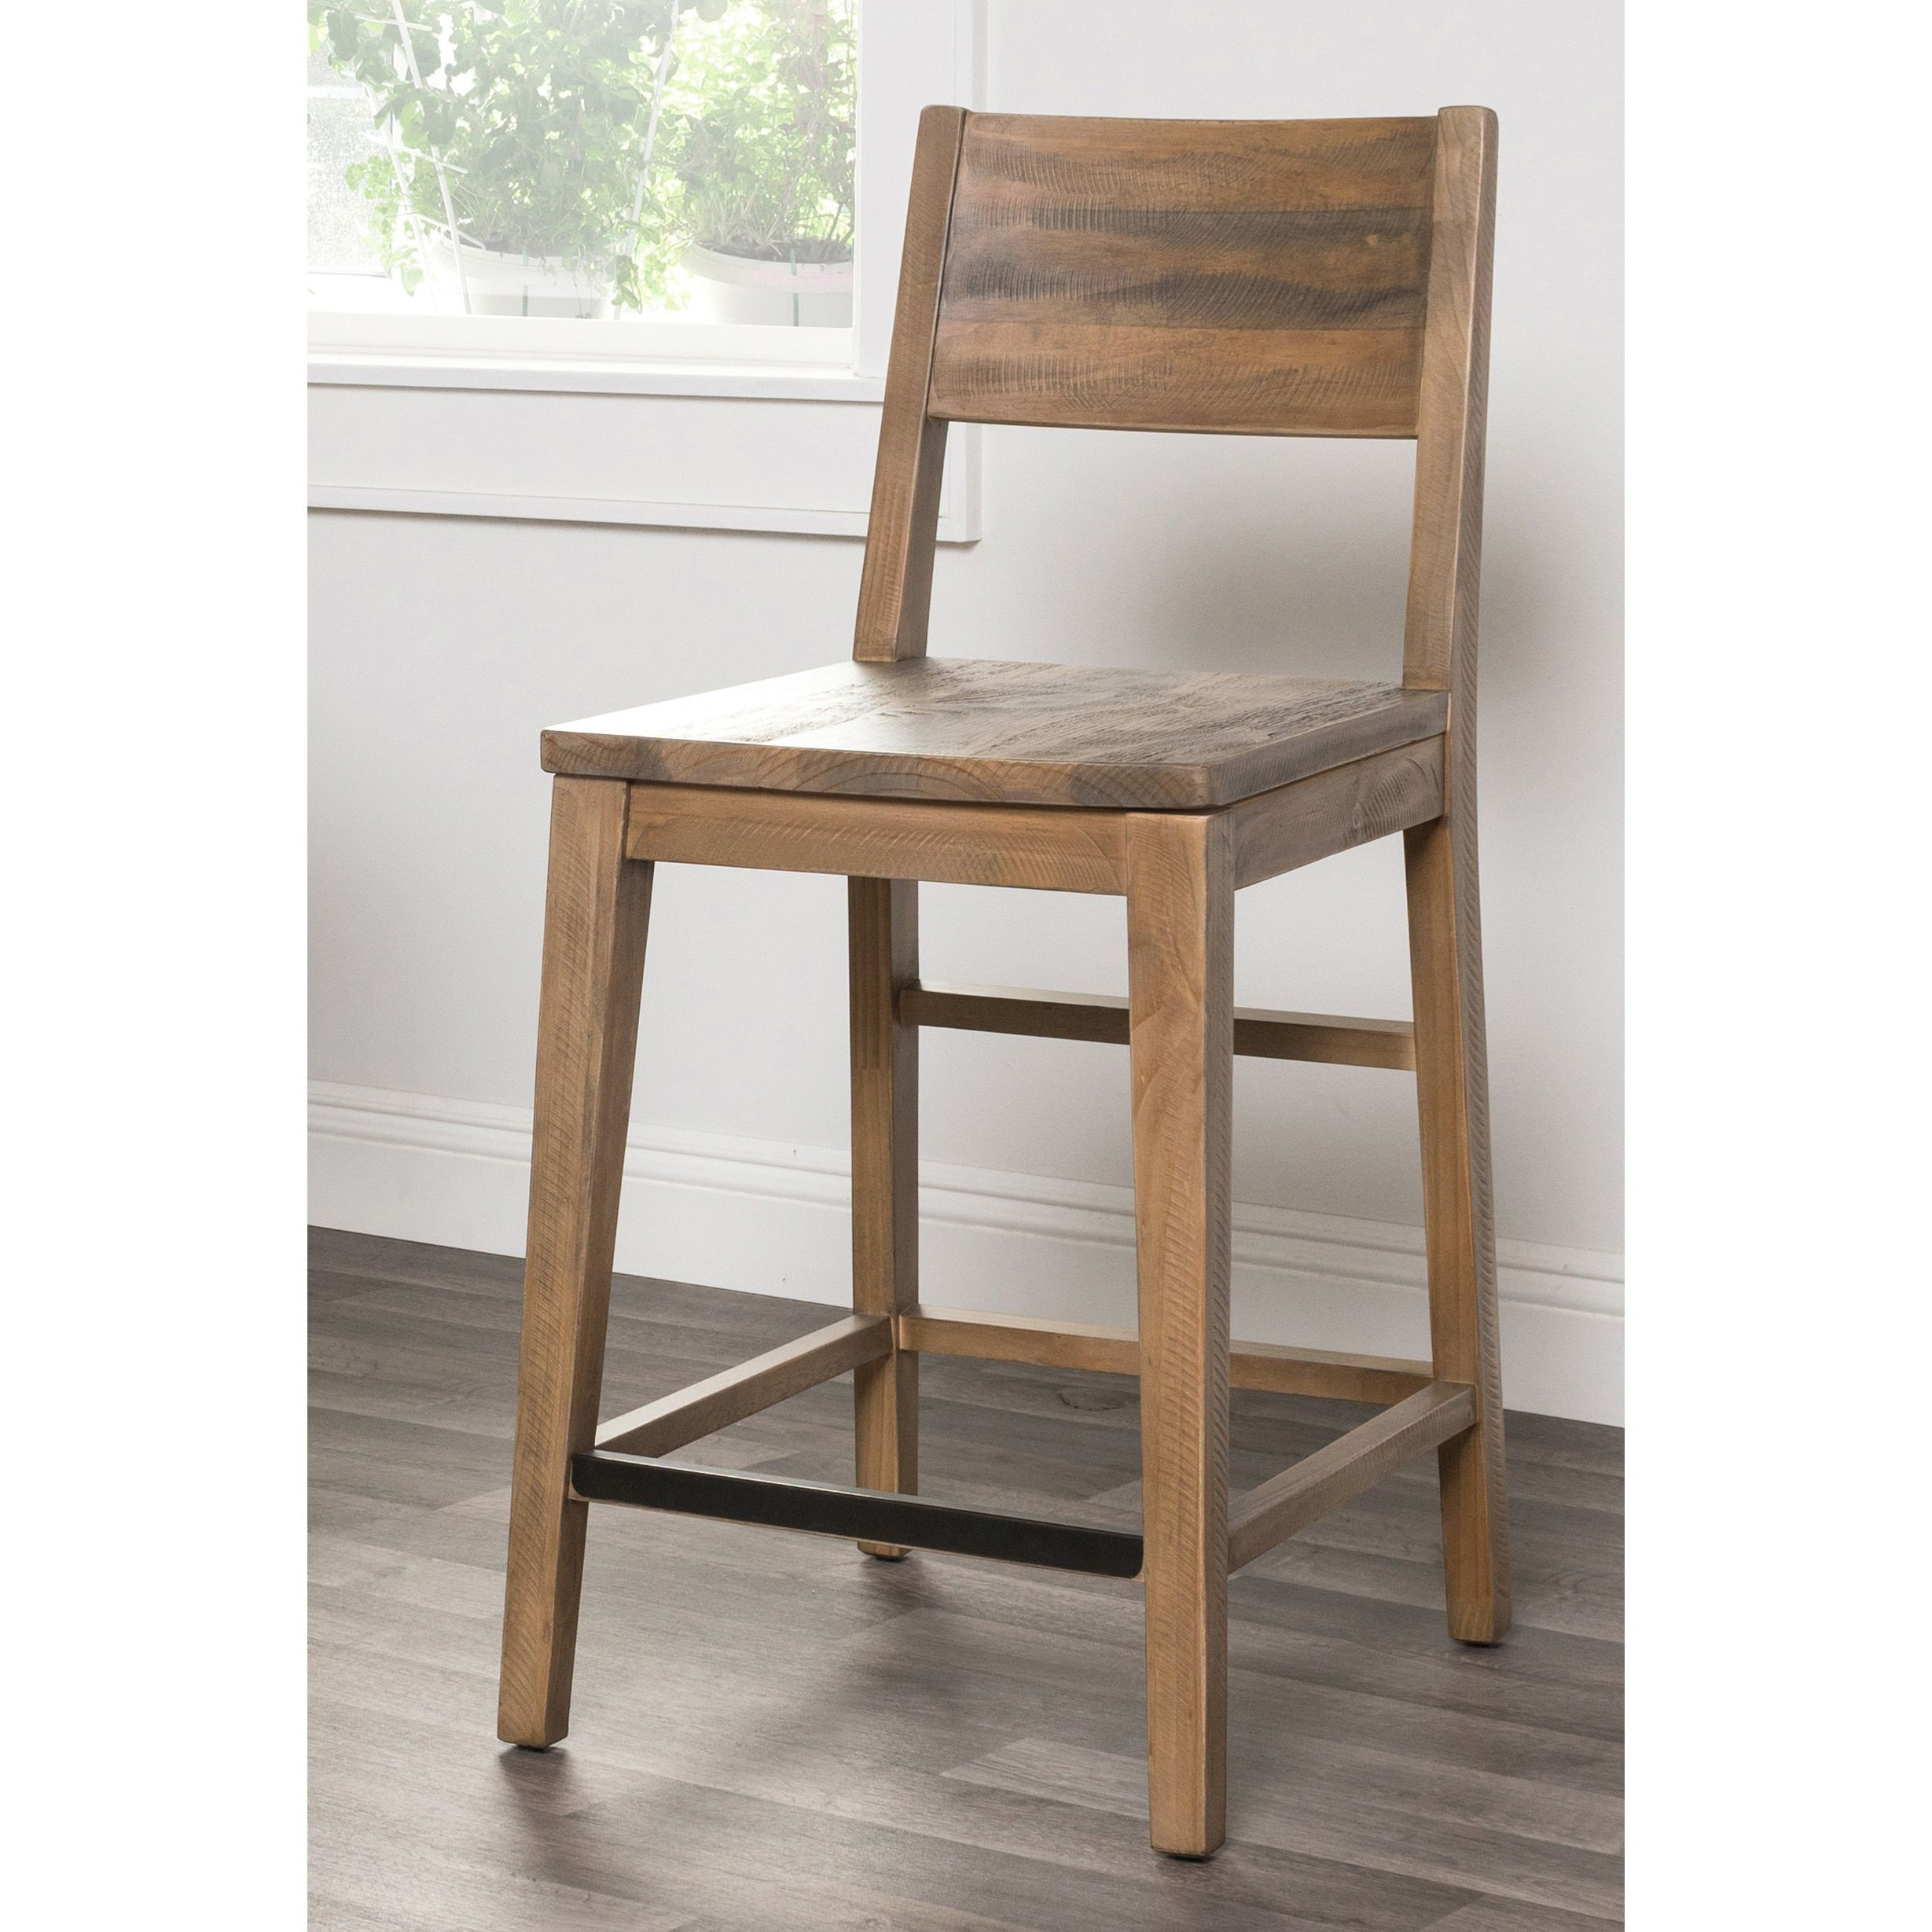 Fine Oscar Natural Reclaimed Wood 24 Inch Counter Stool By Kosas Beatyapartments Chair Design Images Beatyapartmentscom